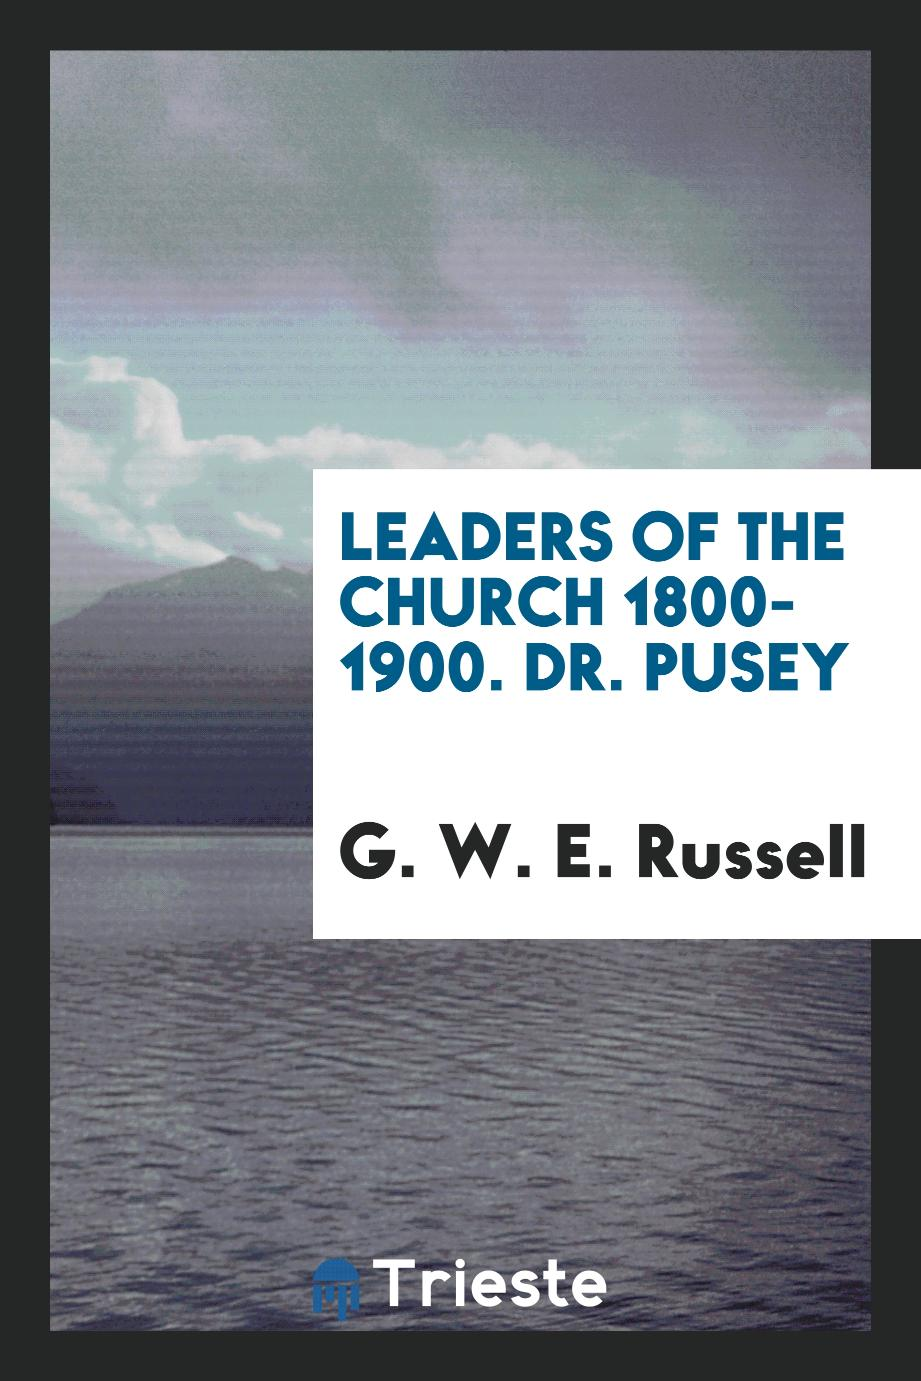 Leaders of the Church 1800-1900. Dr. Pusey